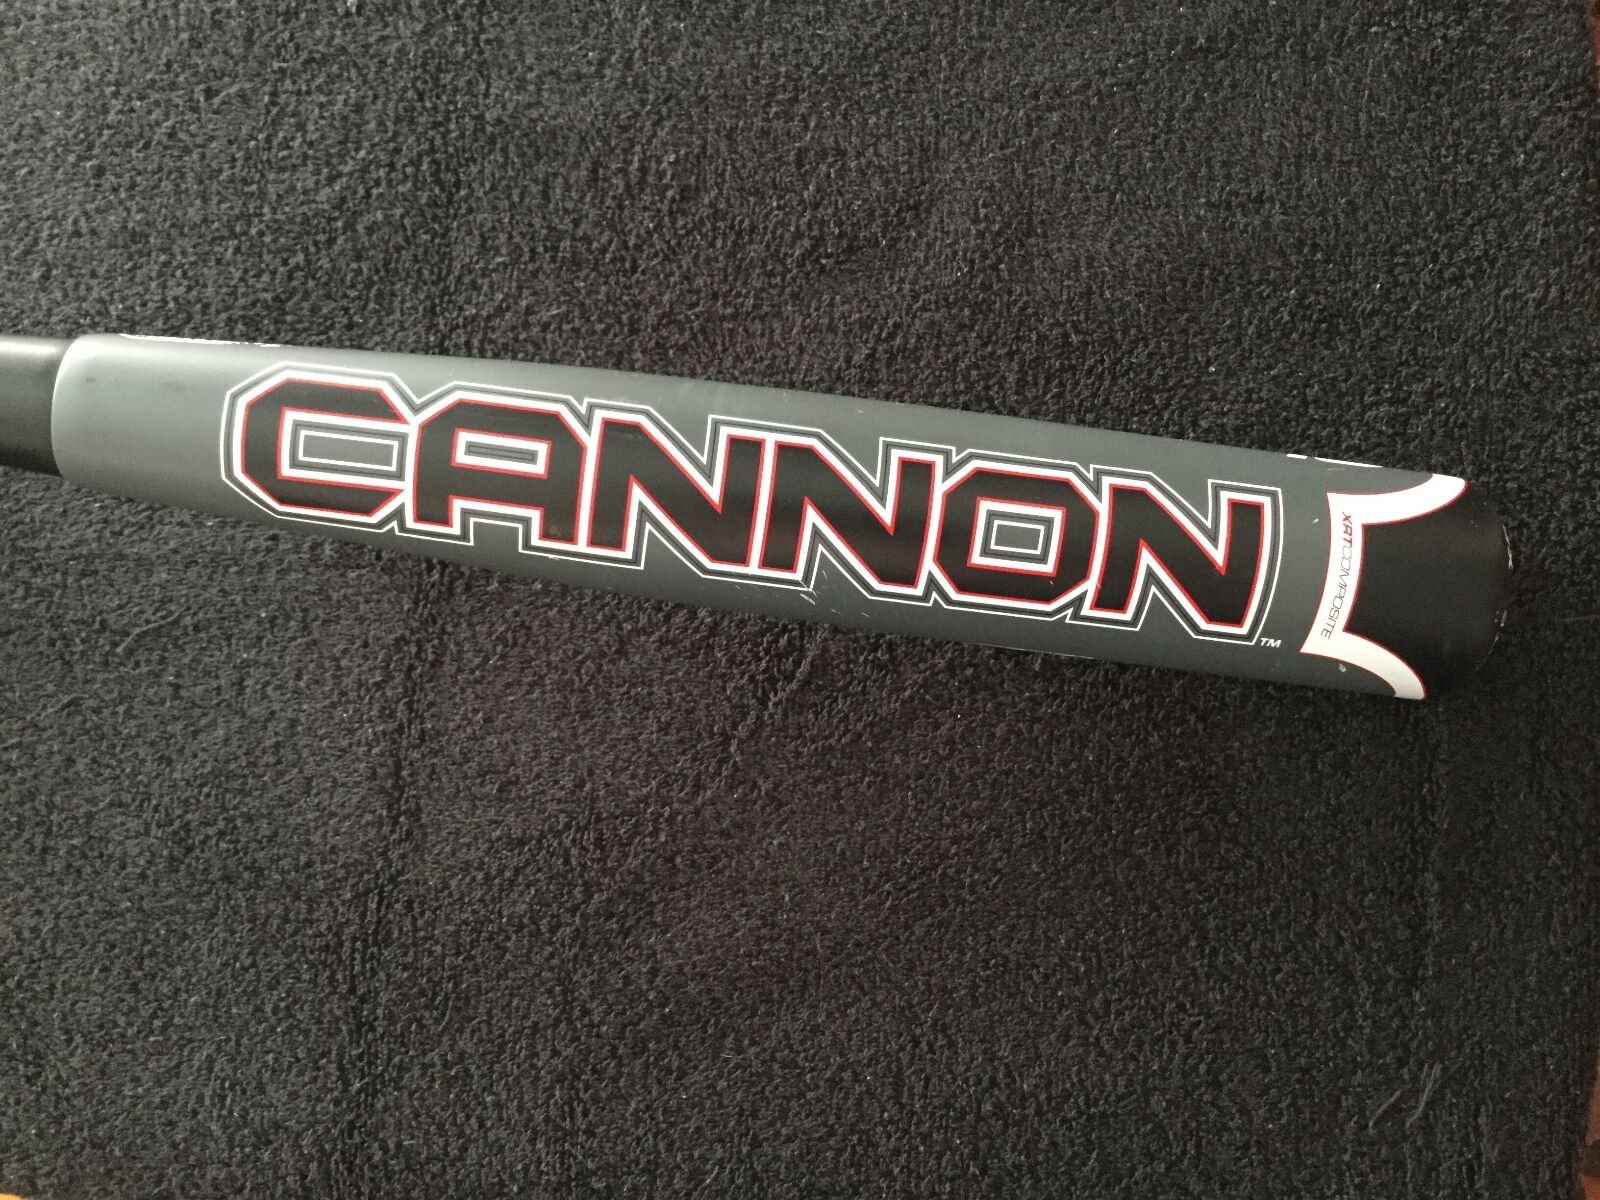 BOOMBAH CANNON SLC10 SS1ALLOY XRT COMPOSITE BASEBALL BAT 32  22 OZ